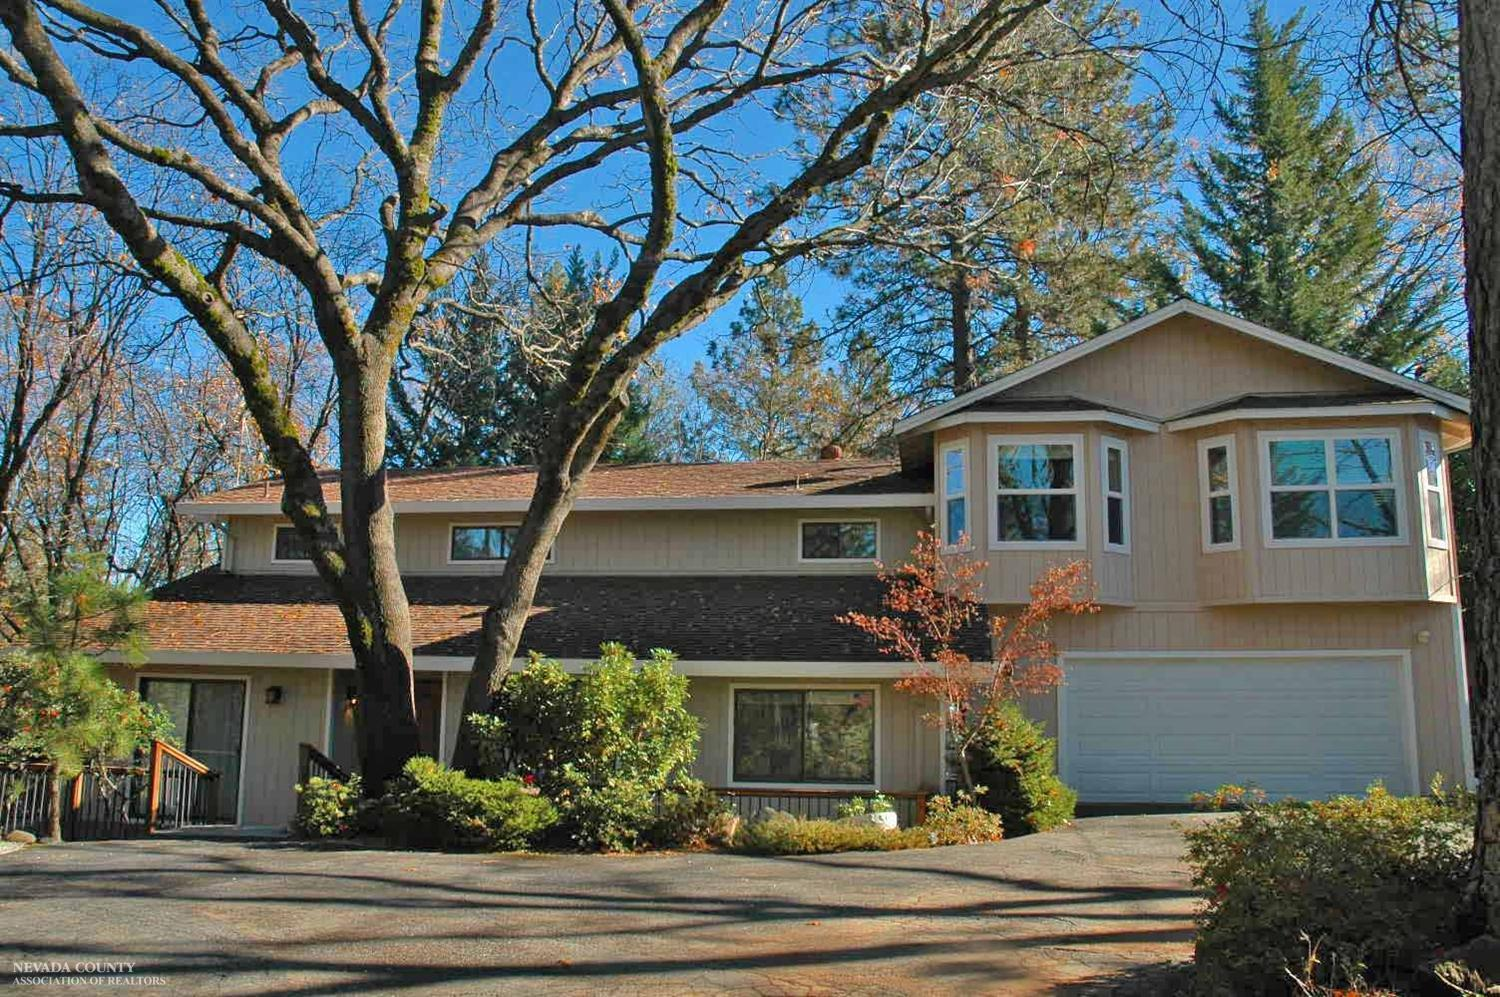 17207 Alexandra Way, Grass Valley, California 95949